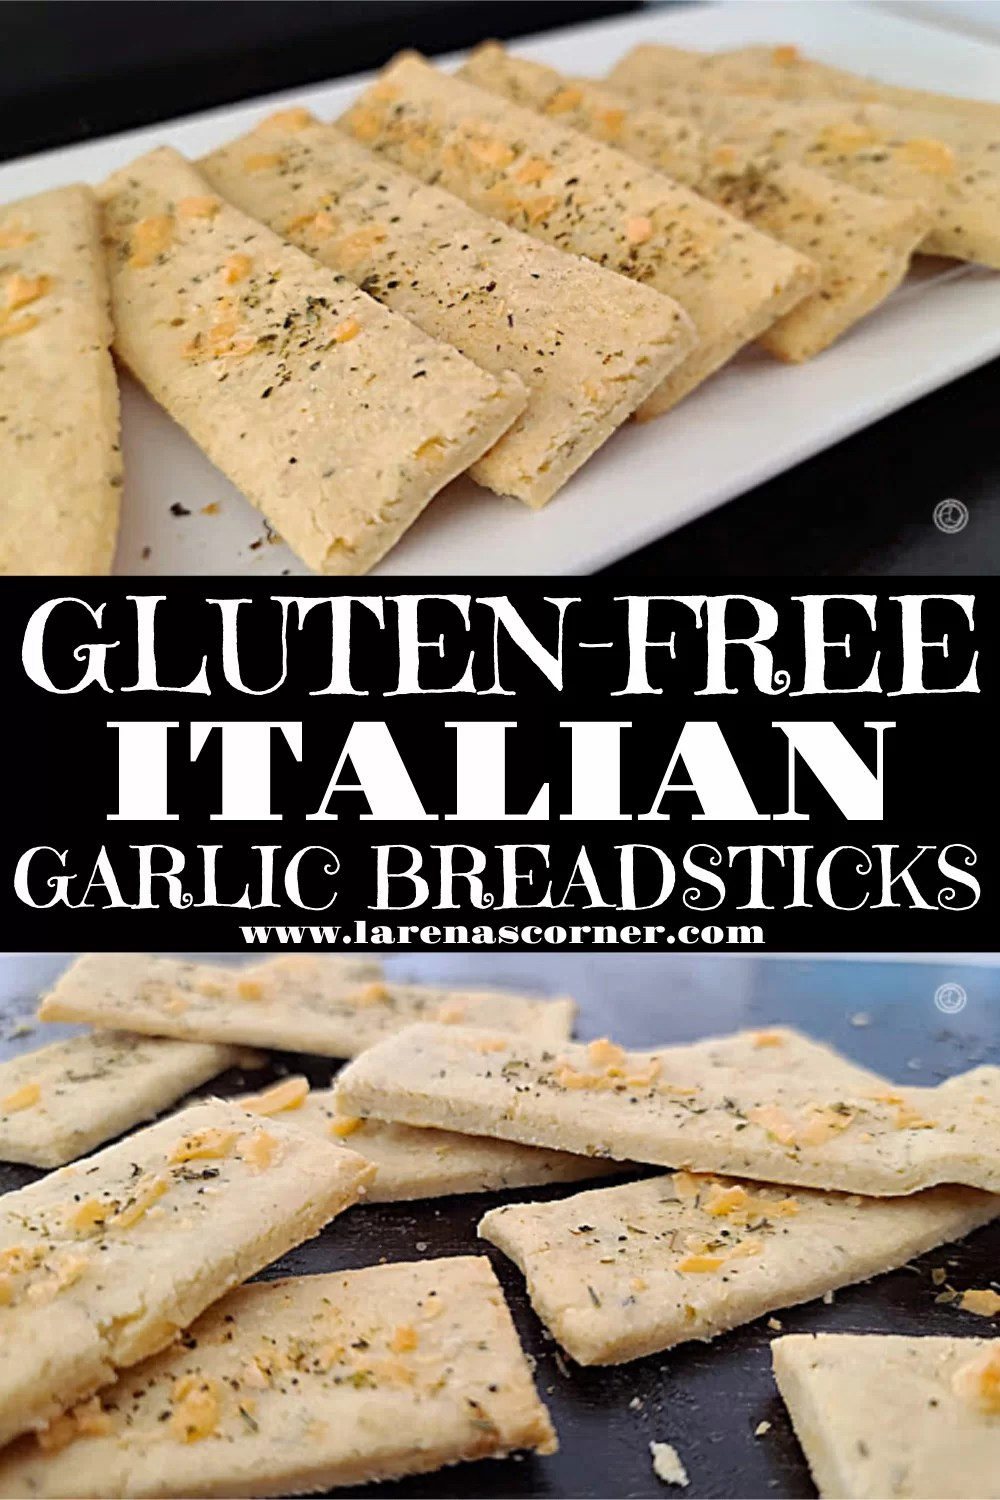 Two pictures of Gluten-Free Italian Garlic Breadsticks. One picture of them on the baking stone and one of them on a serving platter.